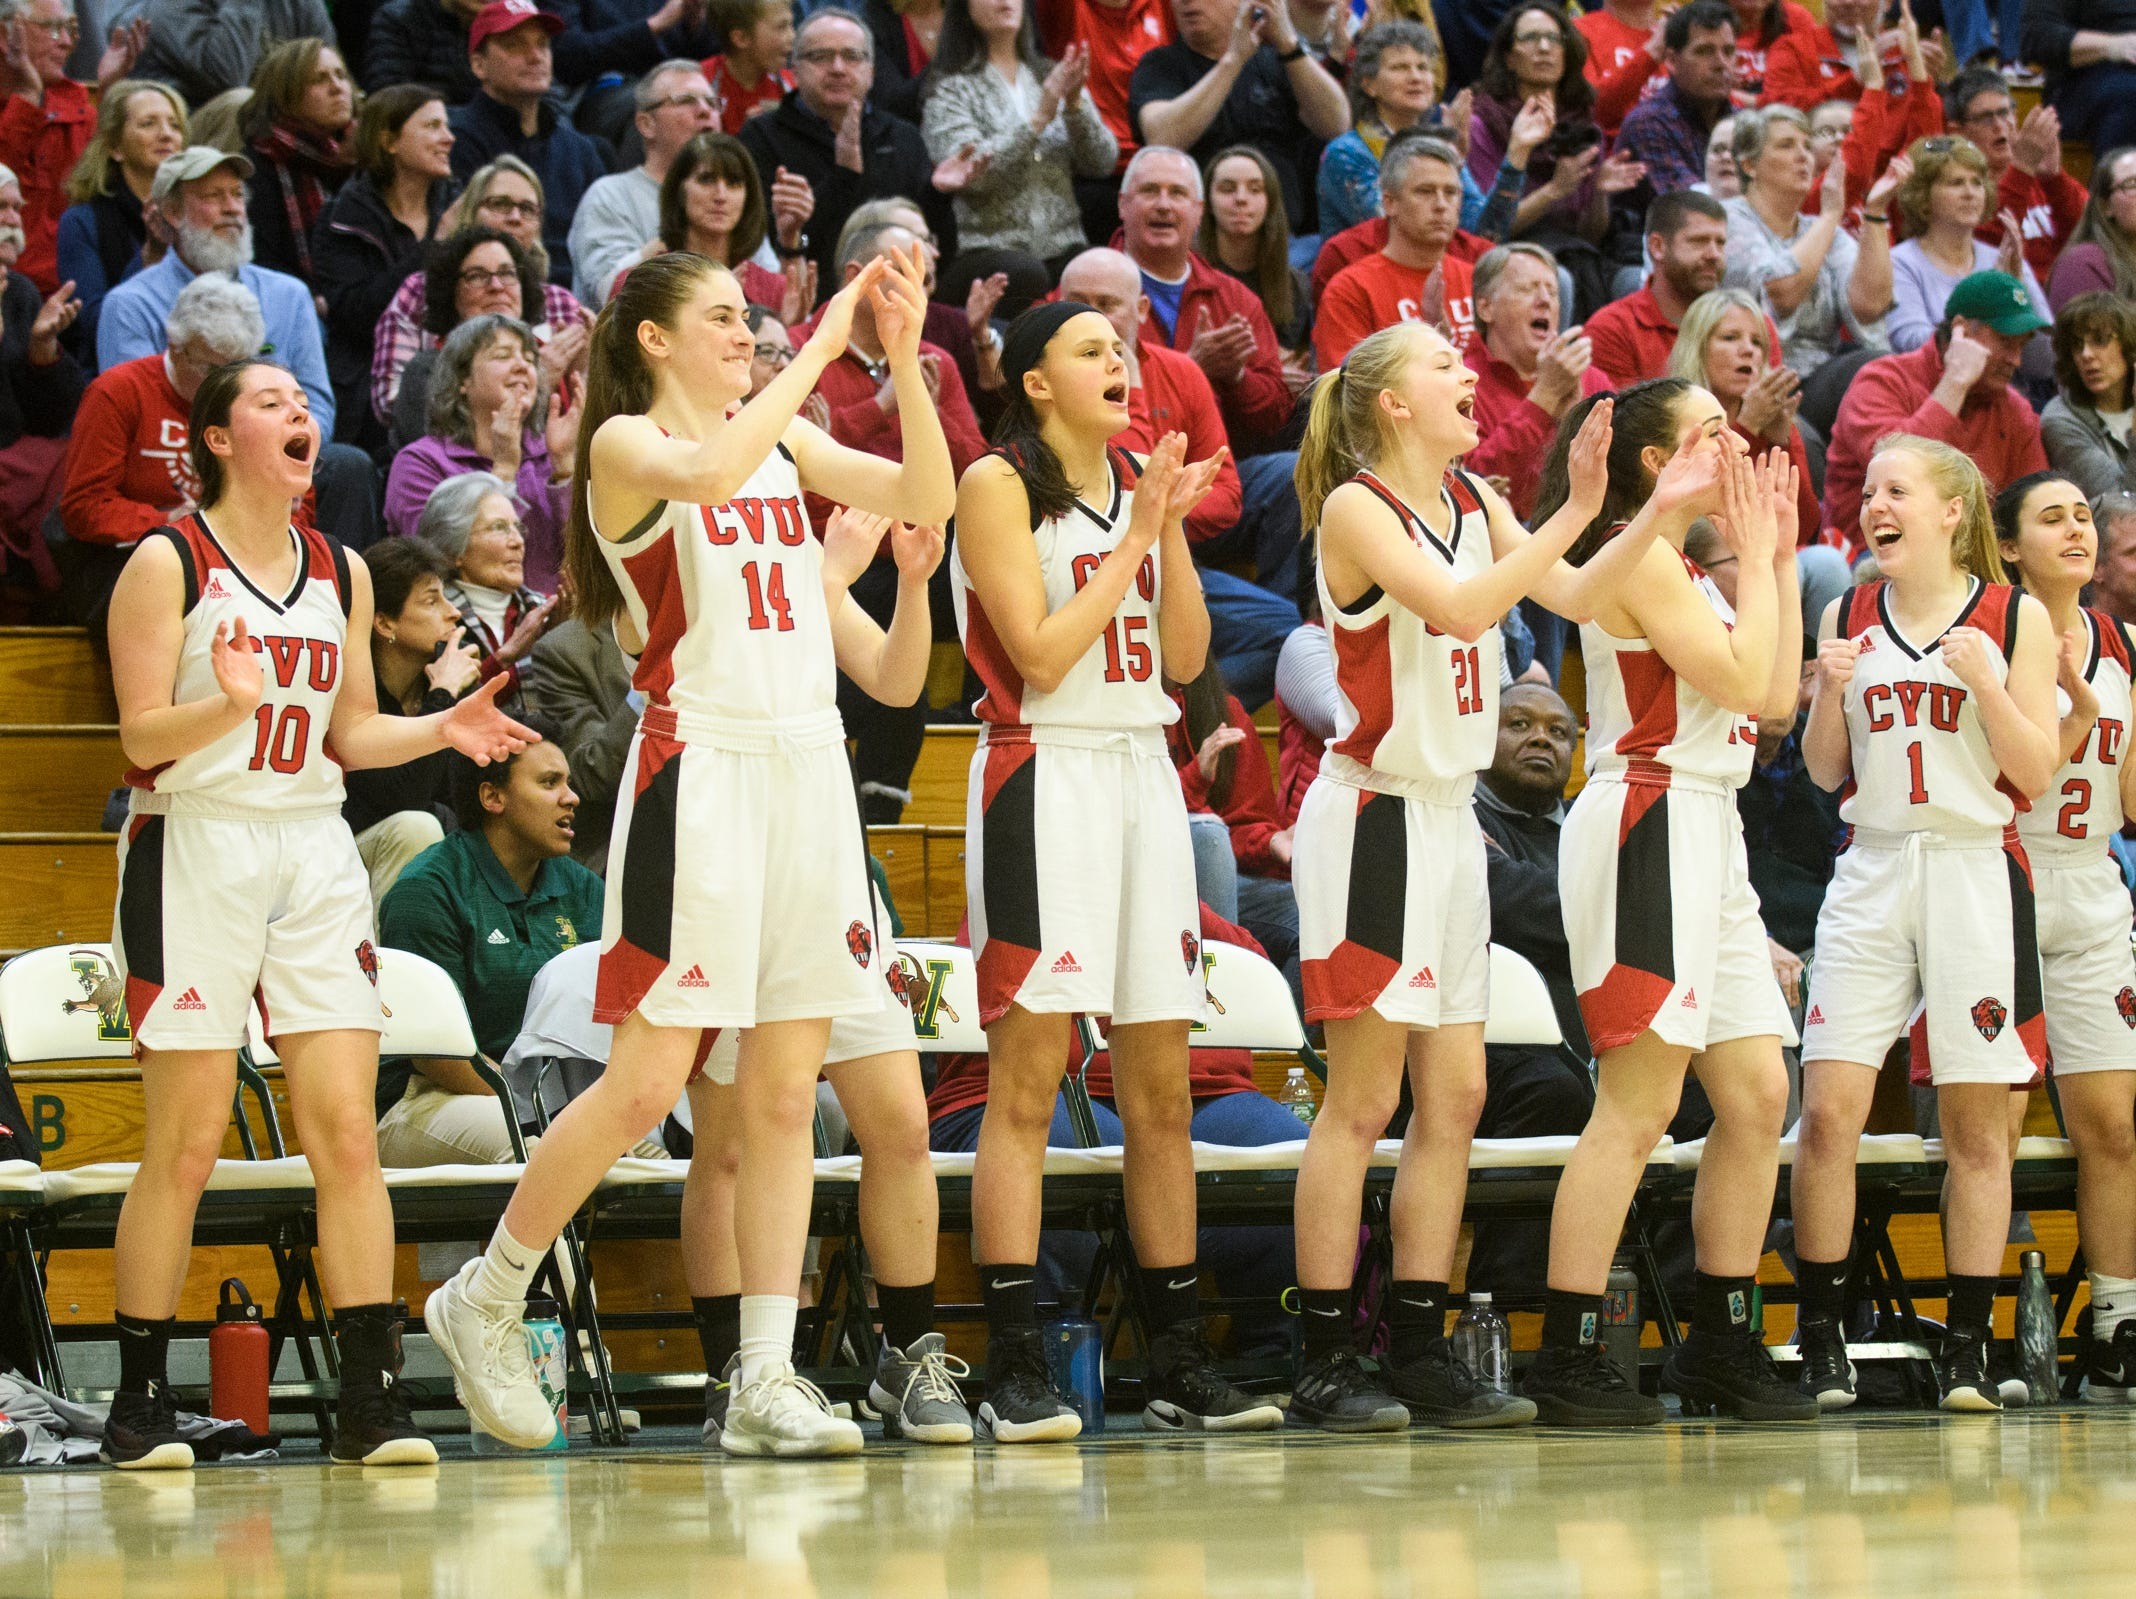 The CVU bench cheers for the team during the girls semifinal basketball game between the Rice Green Knights and the Champlain Valley Union Redhawks at Patrick Gym on Wednesday nigh March 6, 2019 in Burlington, Vermont.